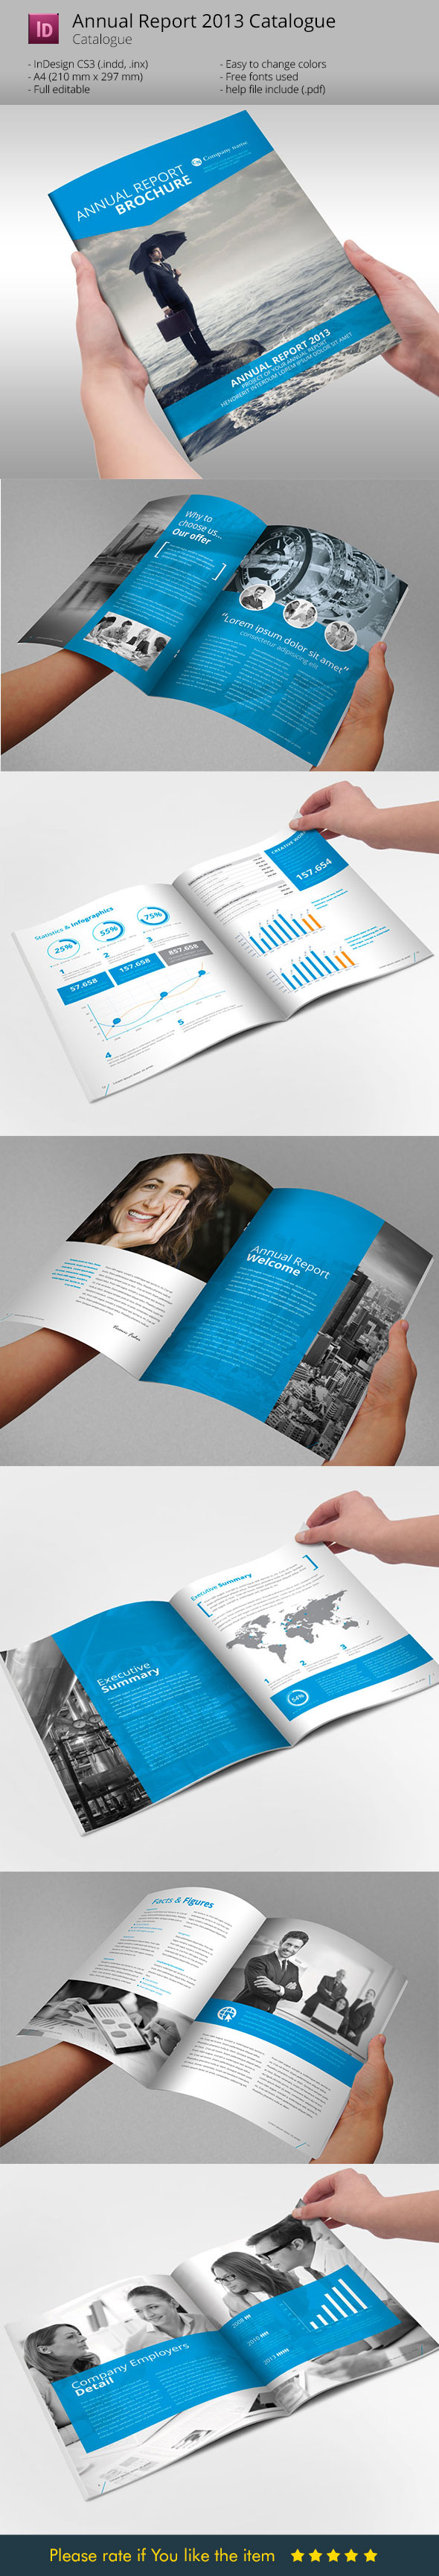 Annual Report Brochure Indesign Template by BraxasMora.deviantart ...